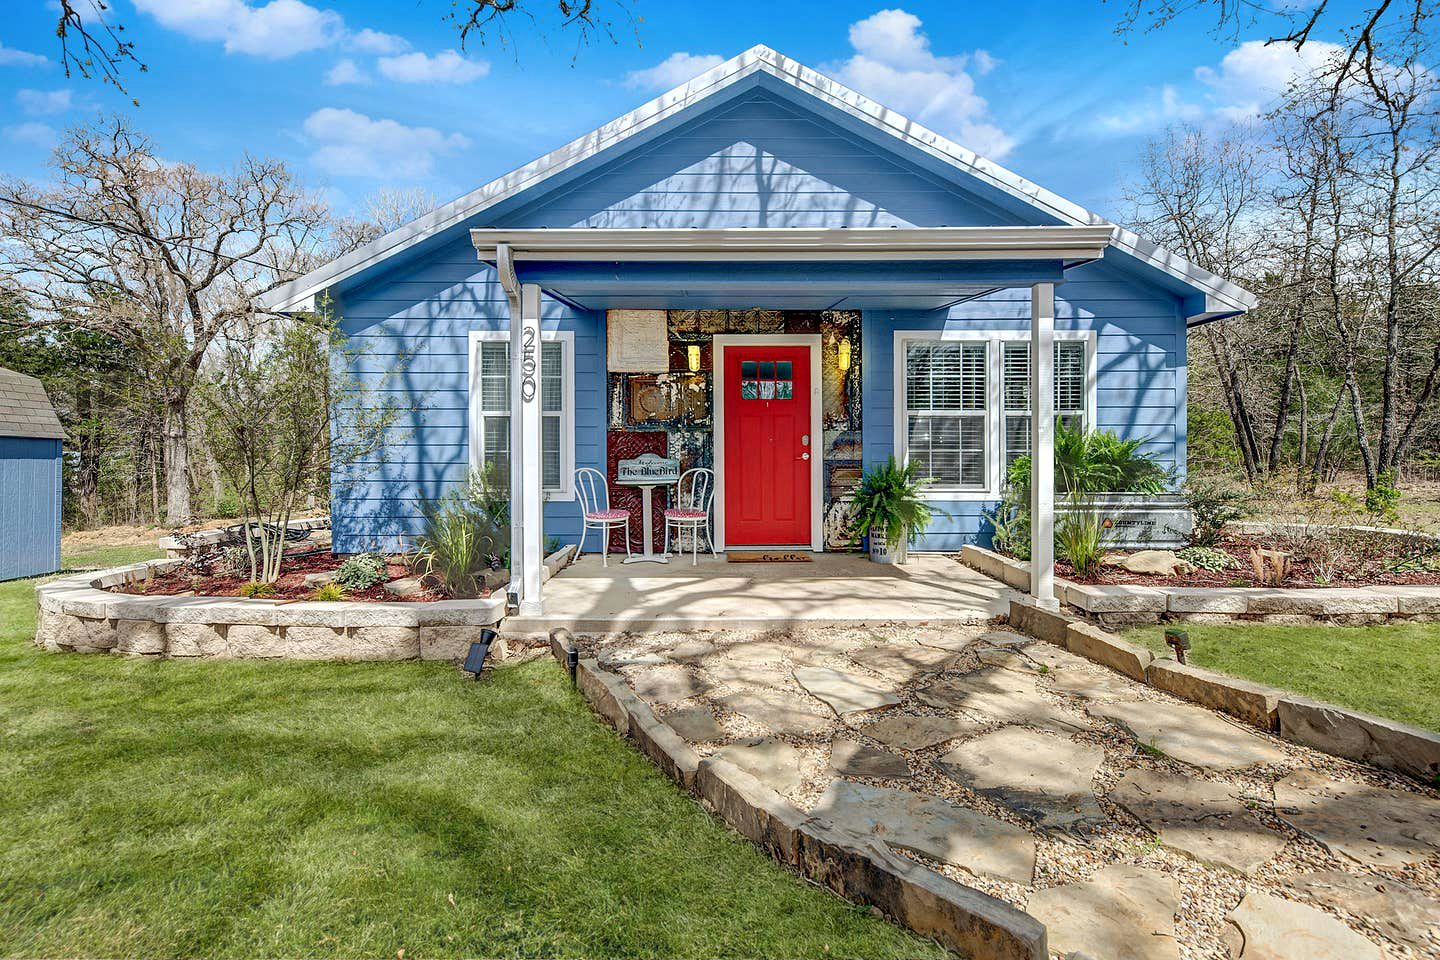 This Texas cottage rental is perfect for a romantic getaway near Dallas.